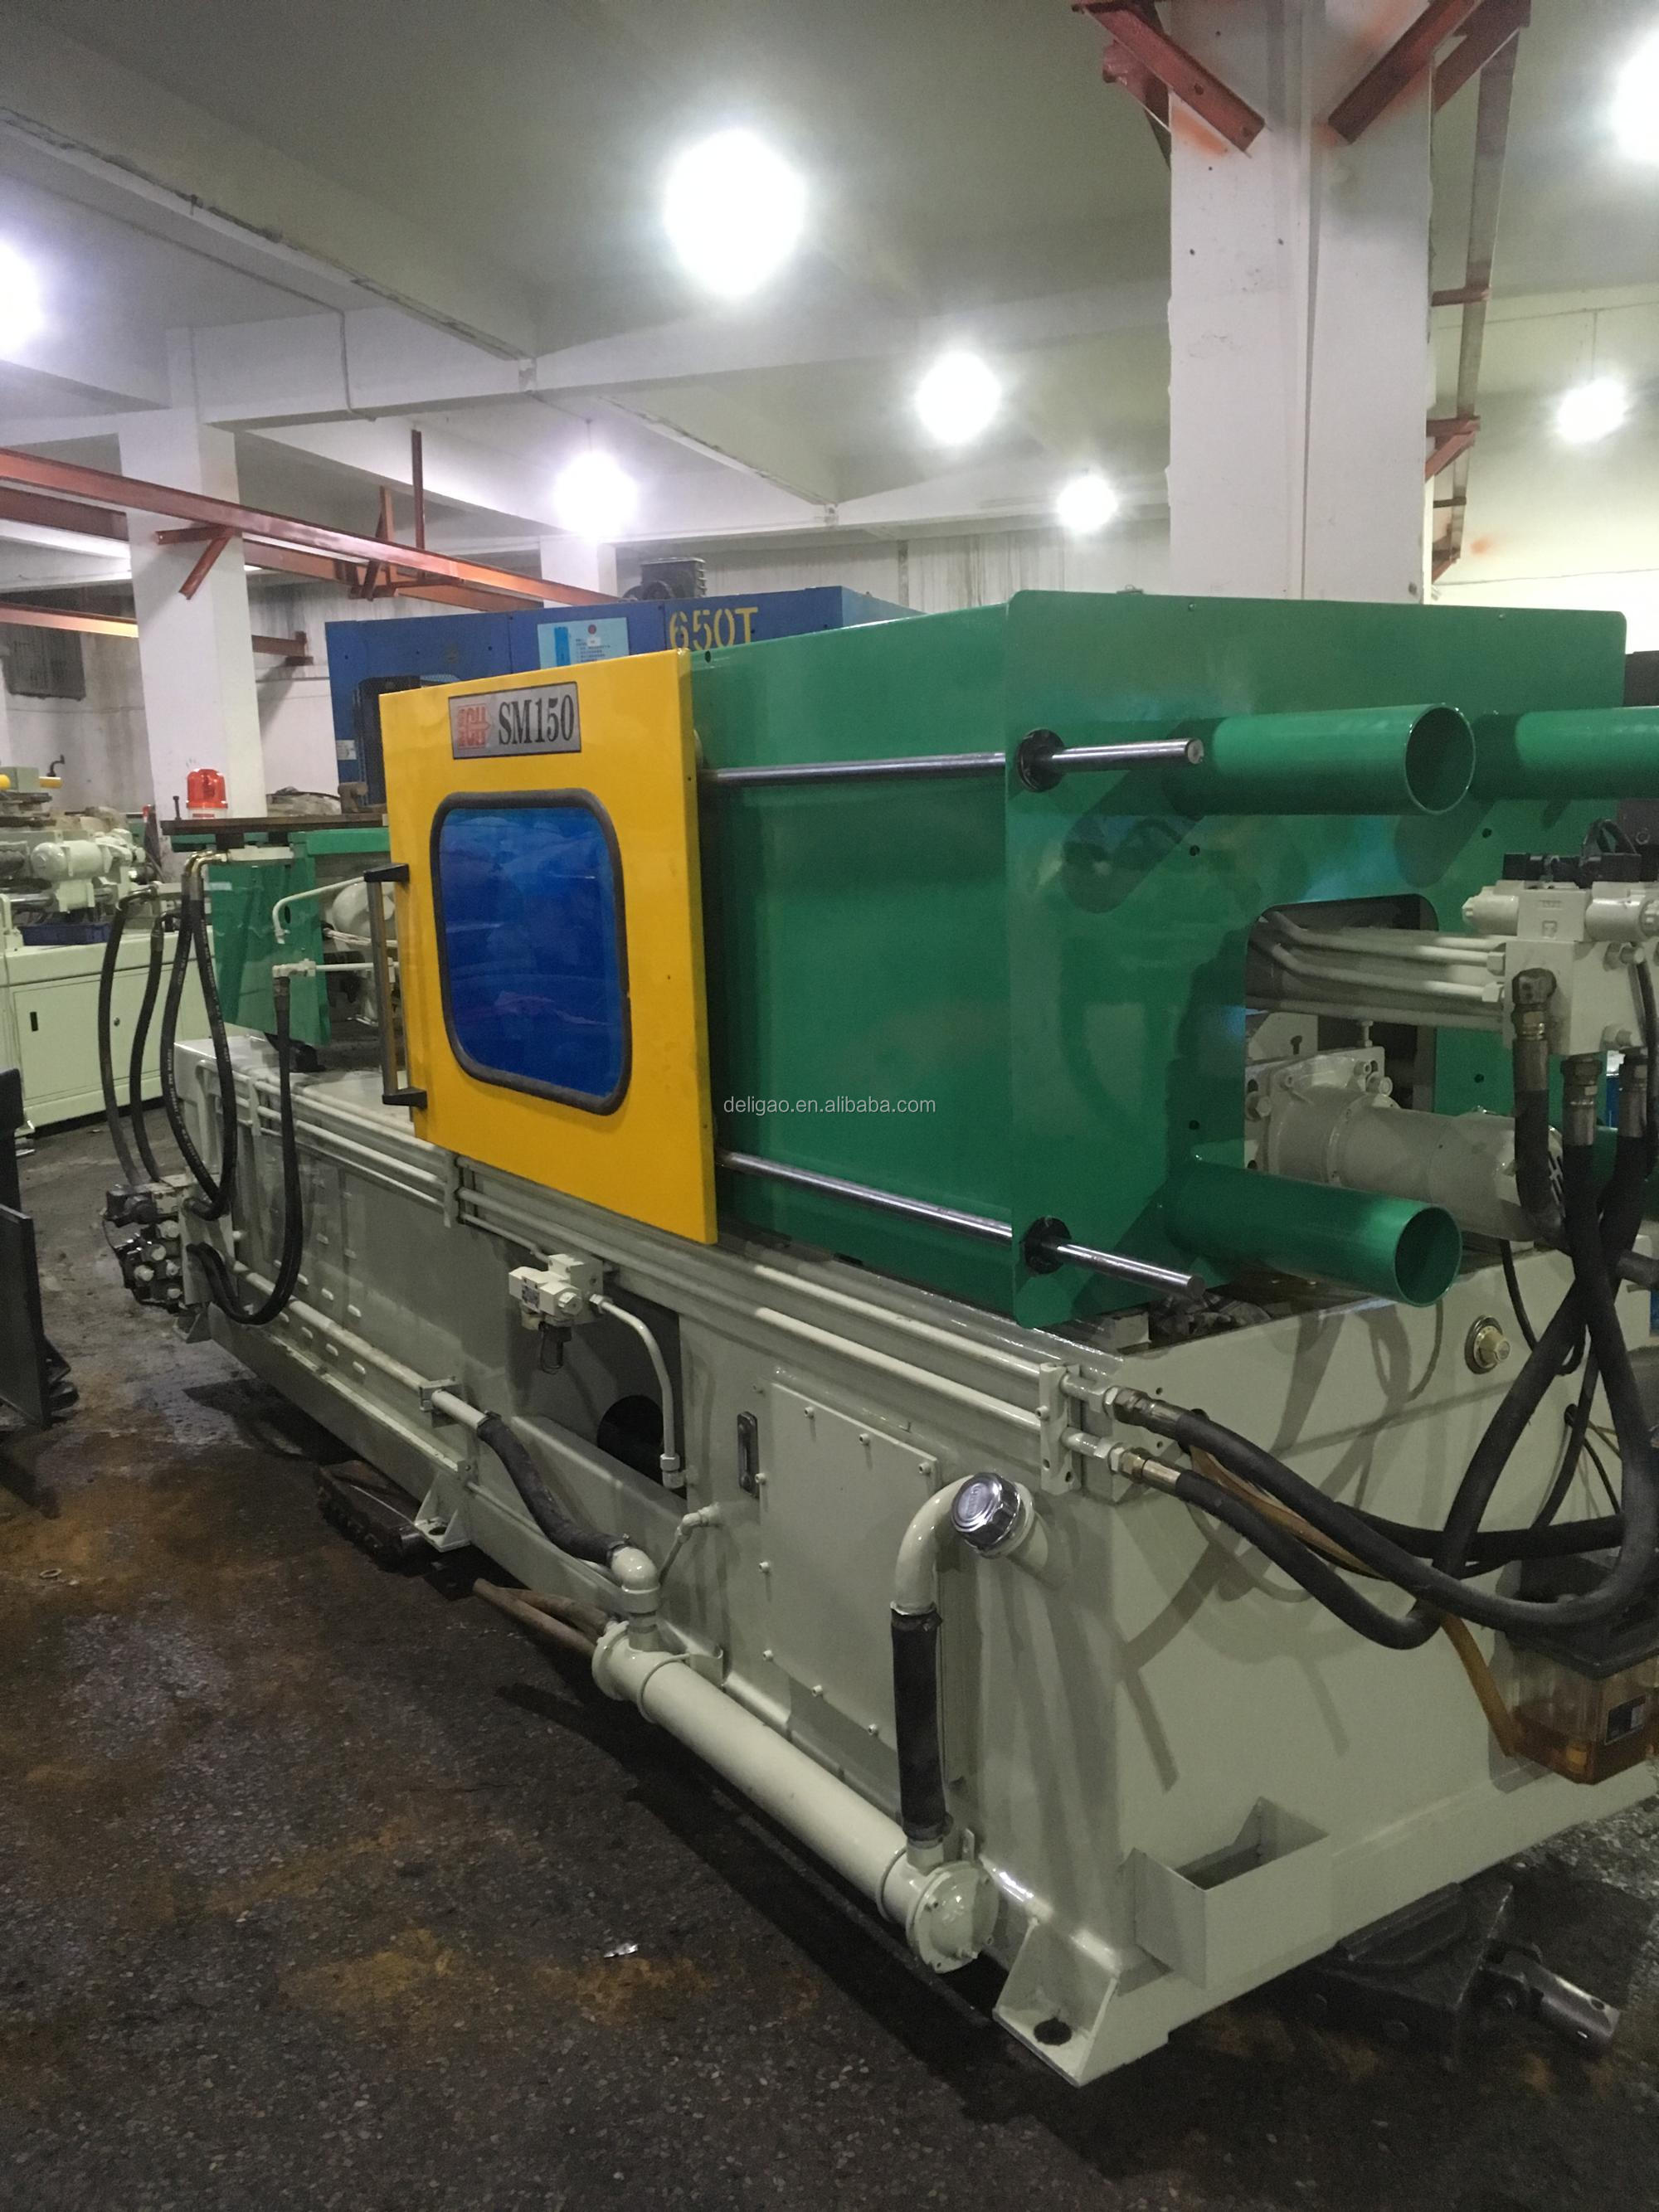 Second-hand Injection Molding Machine Servo Taiwan - Buy ...